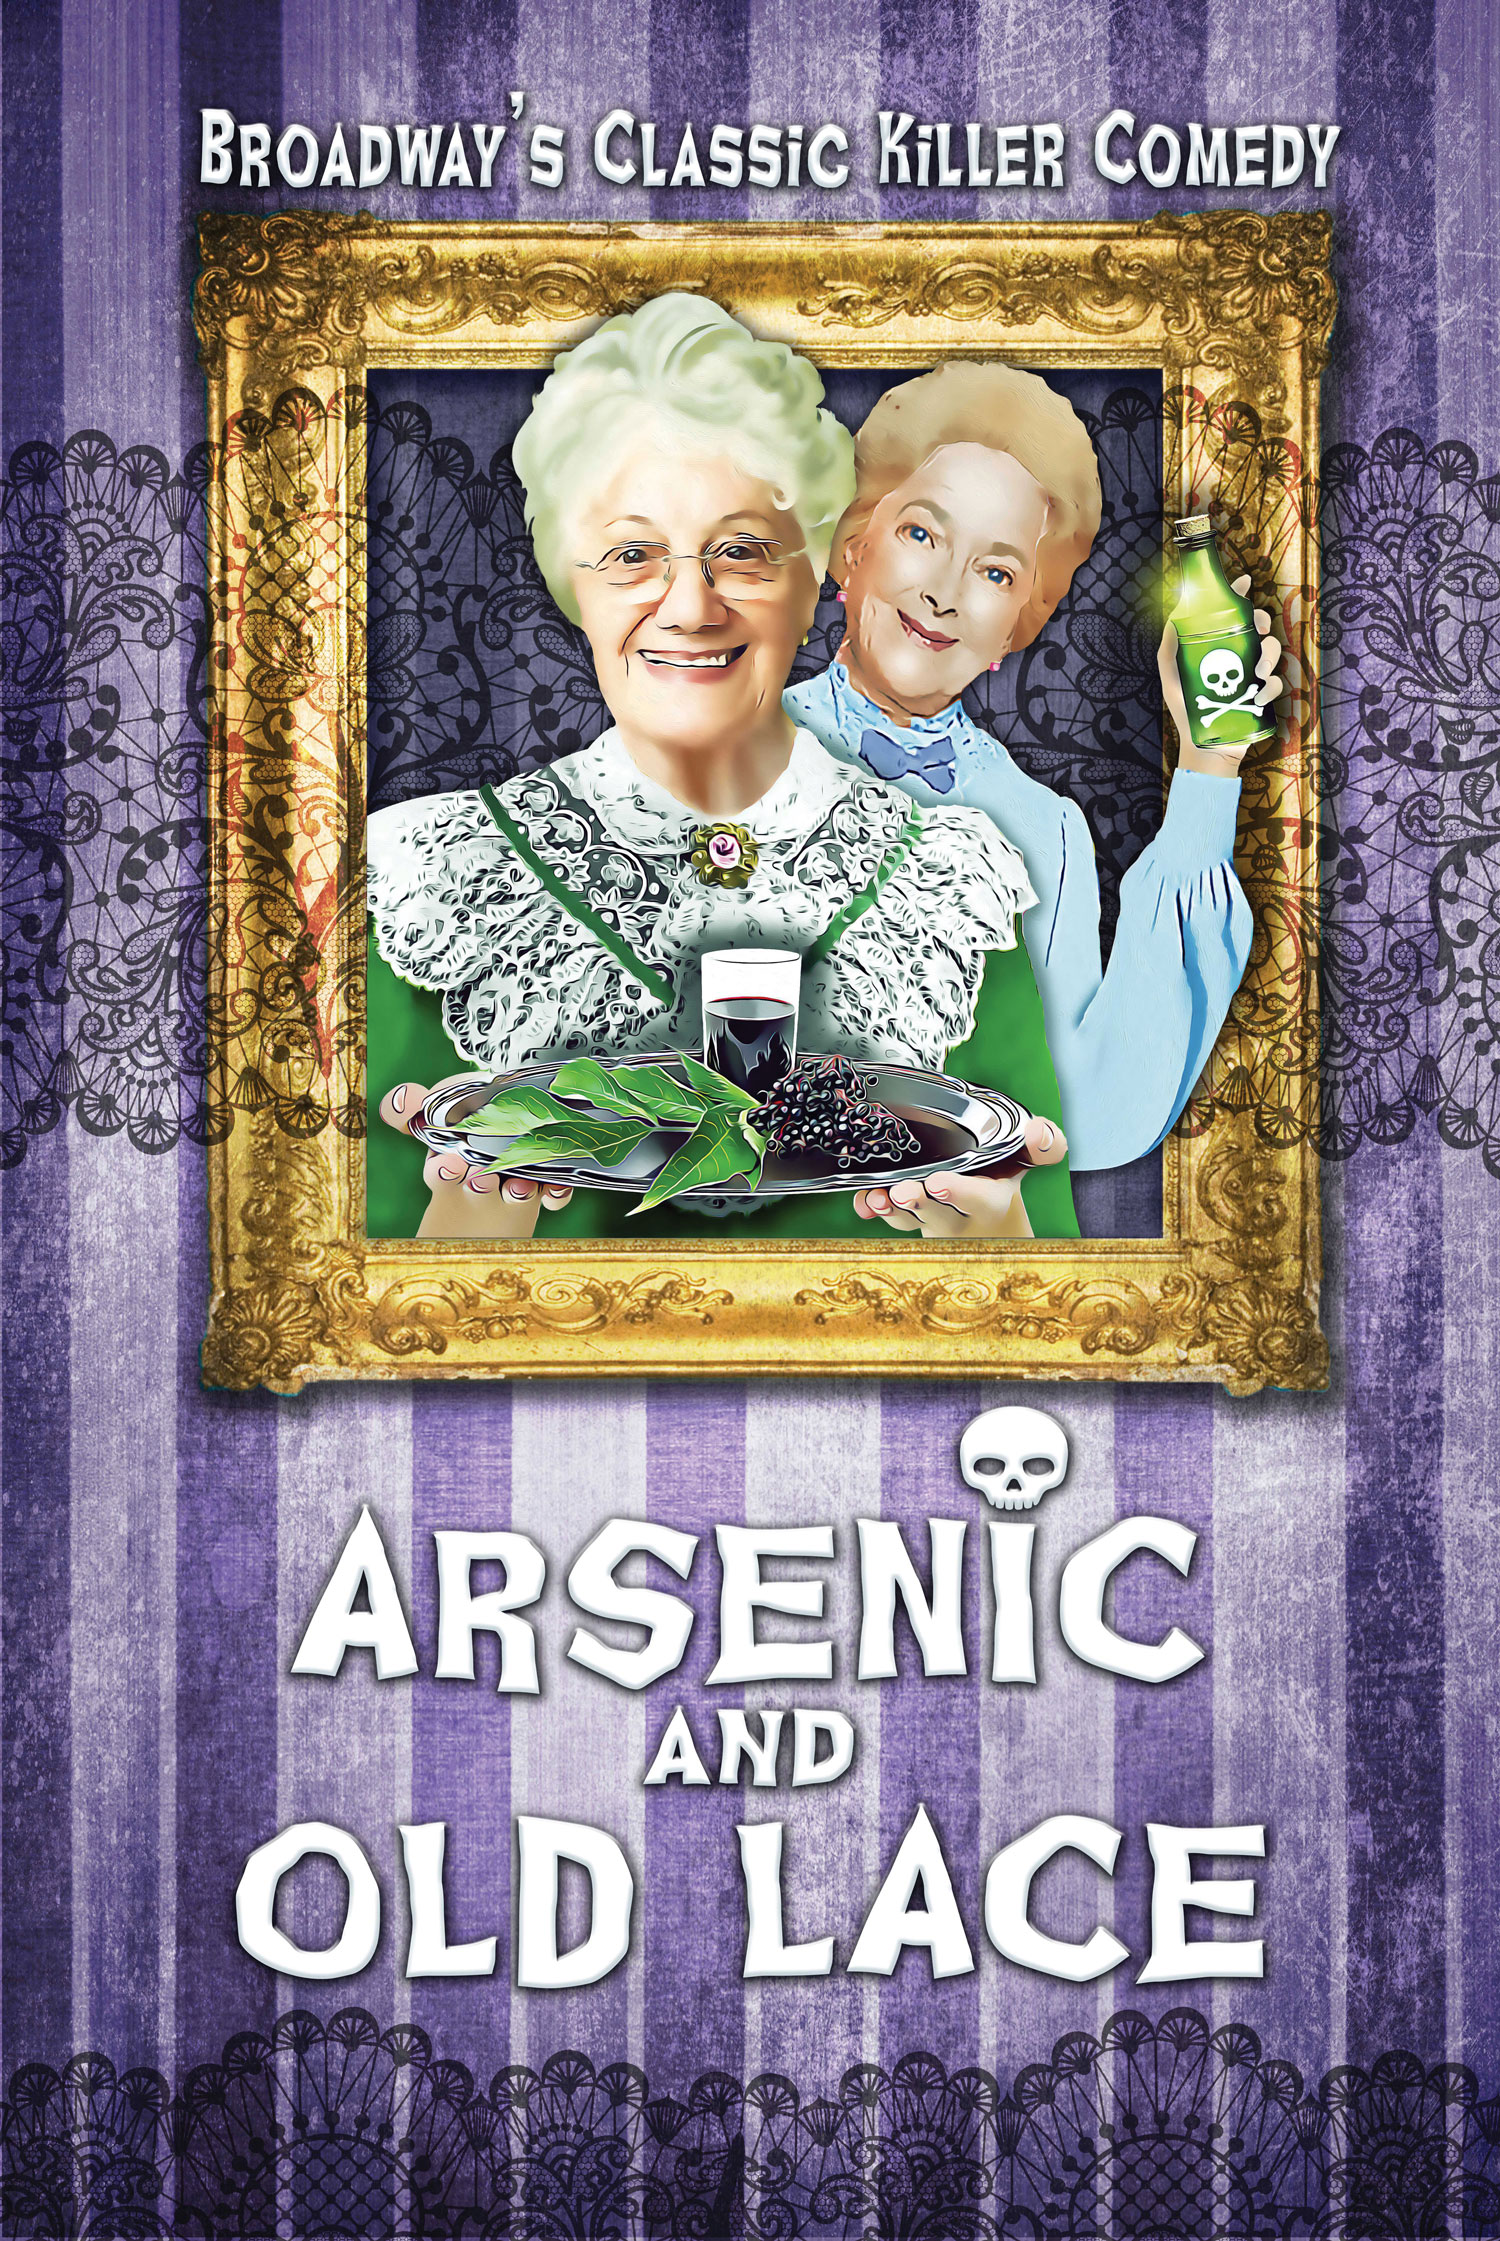 Arsenic & Old Lace artwork, picture of two old ladies holding poison and smiling